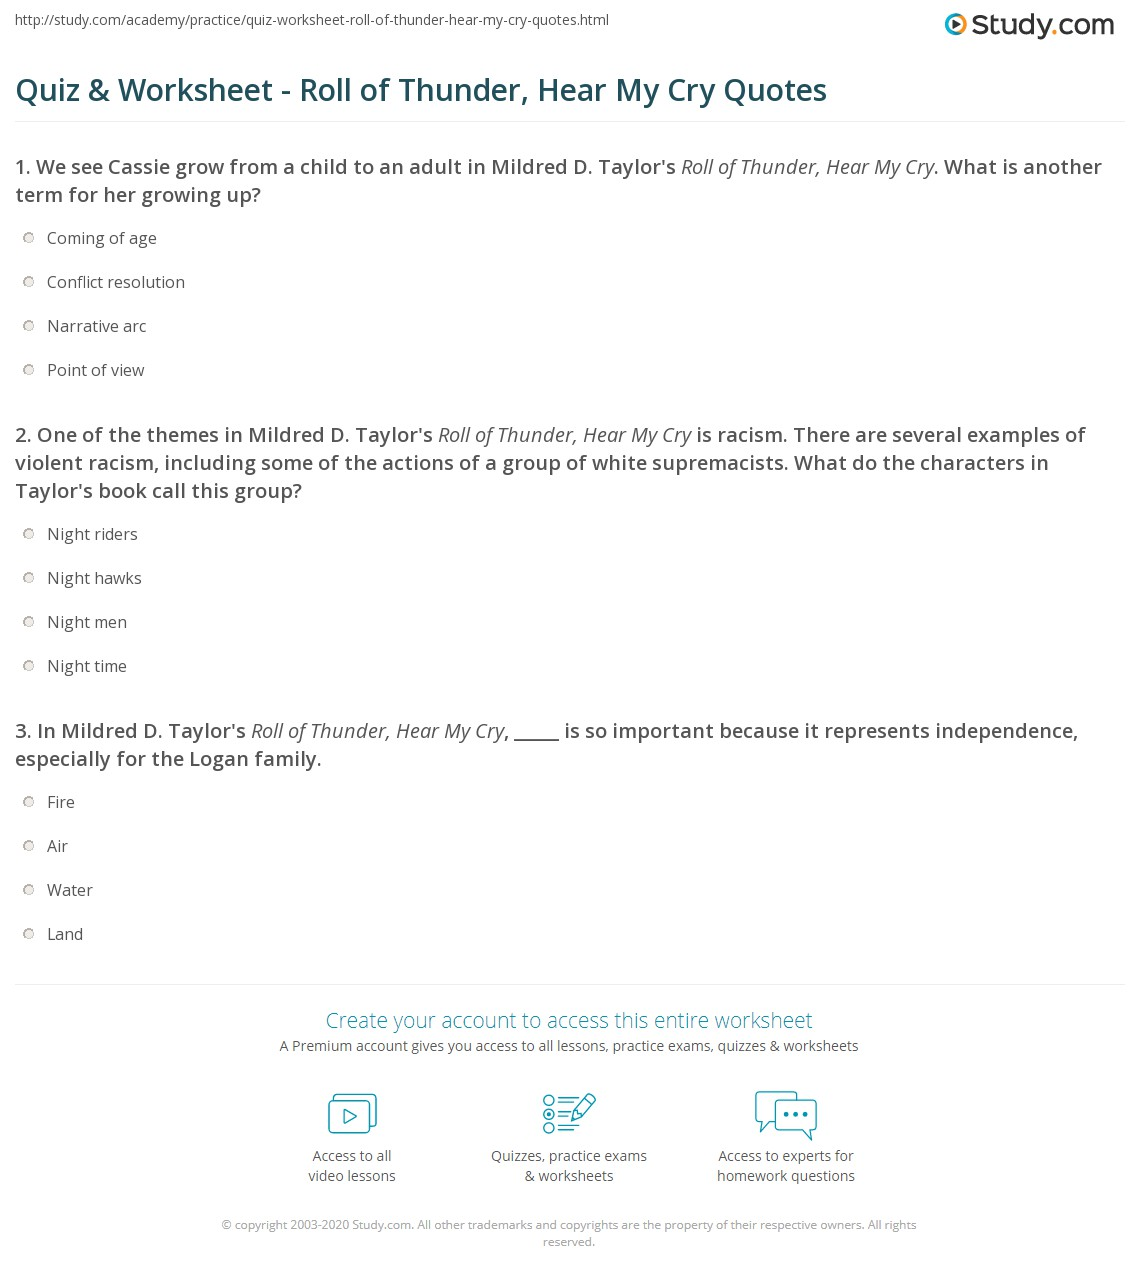 quiz worksheet roll of thunder hear my cry quotes. Black Bedroom Furniture Sets. Home Design Ideas